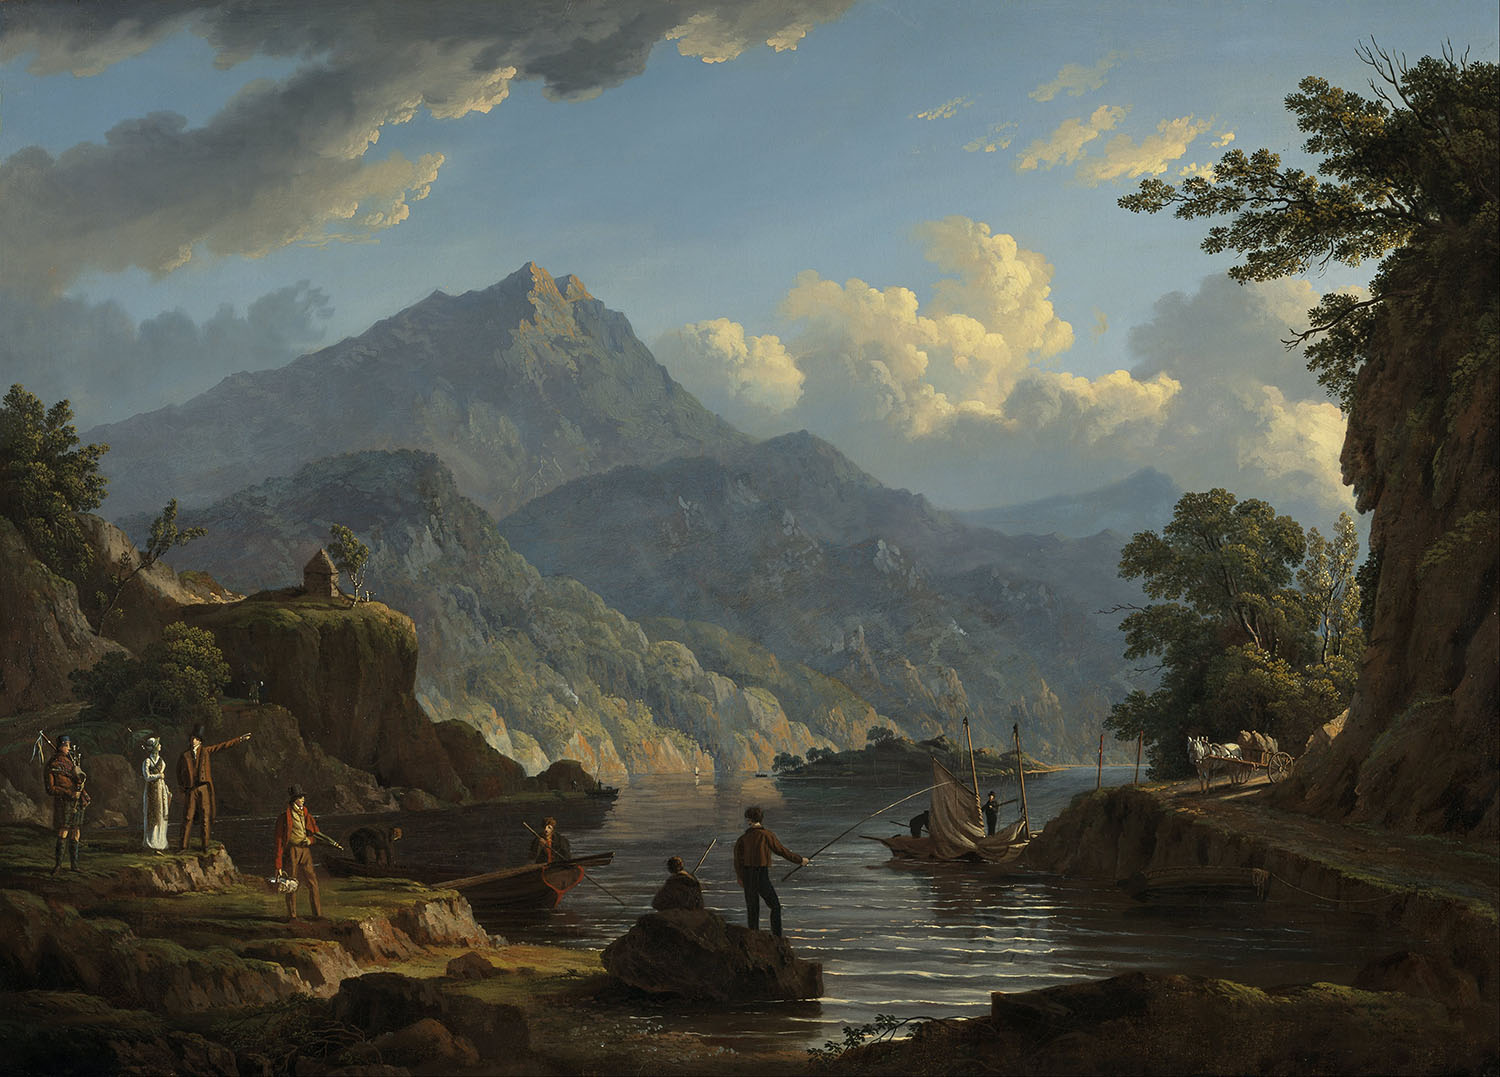 Landscape with Tourists at Loch Katrine, John Knox, 1815.